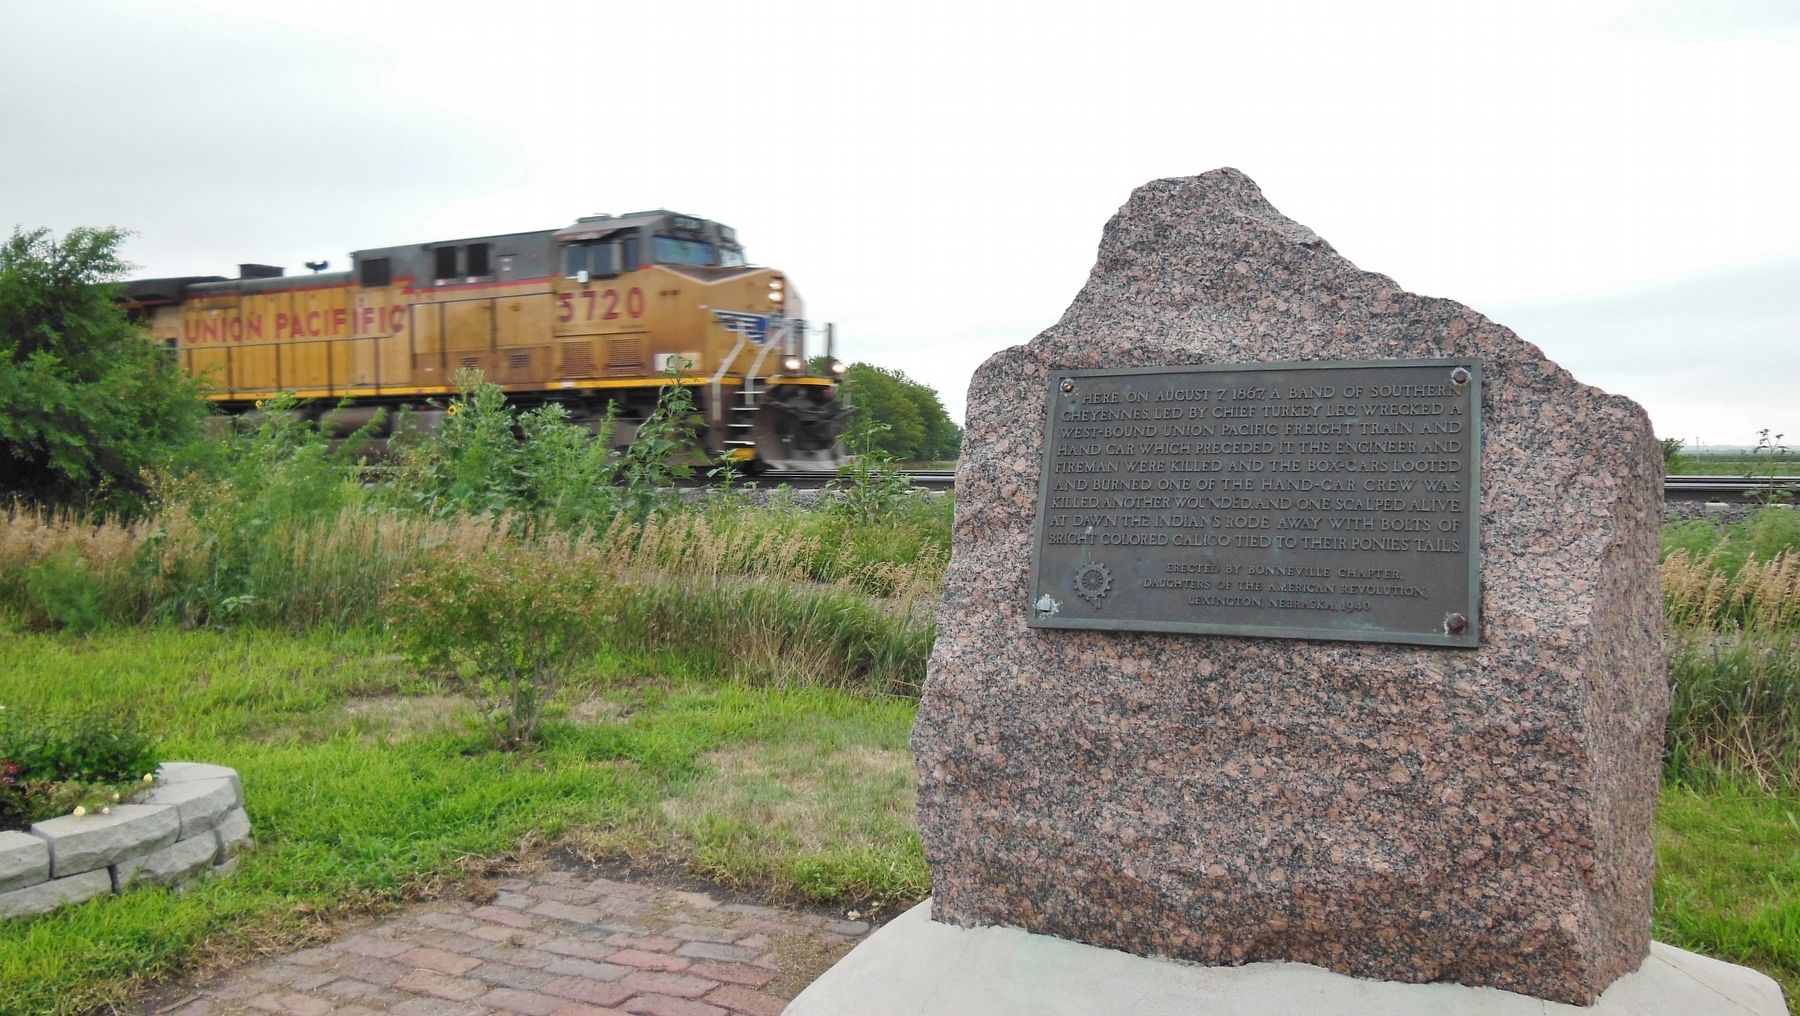 West-bound Union Pacific freight train passing the marker, 146 years later! image. Click for full size.